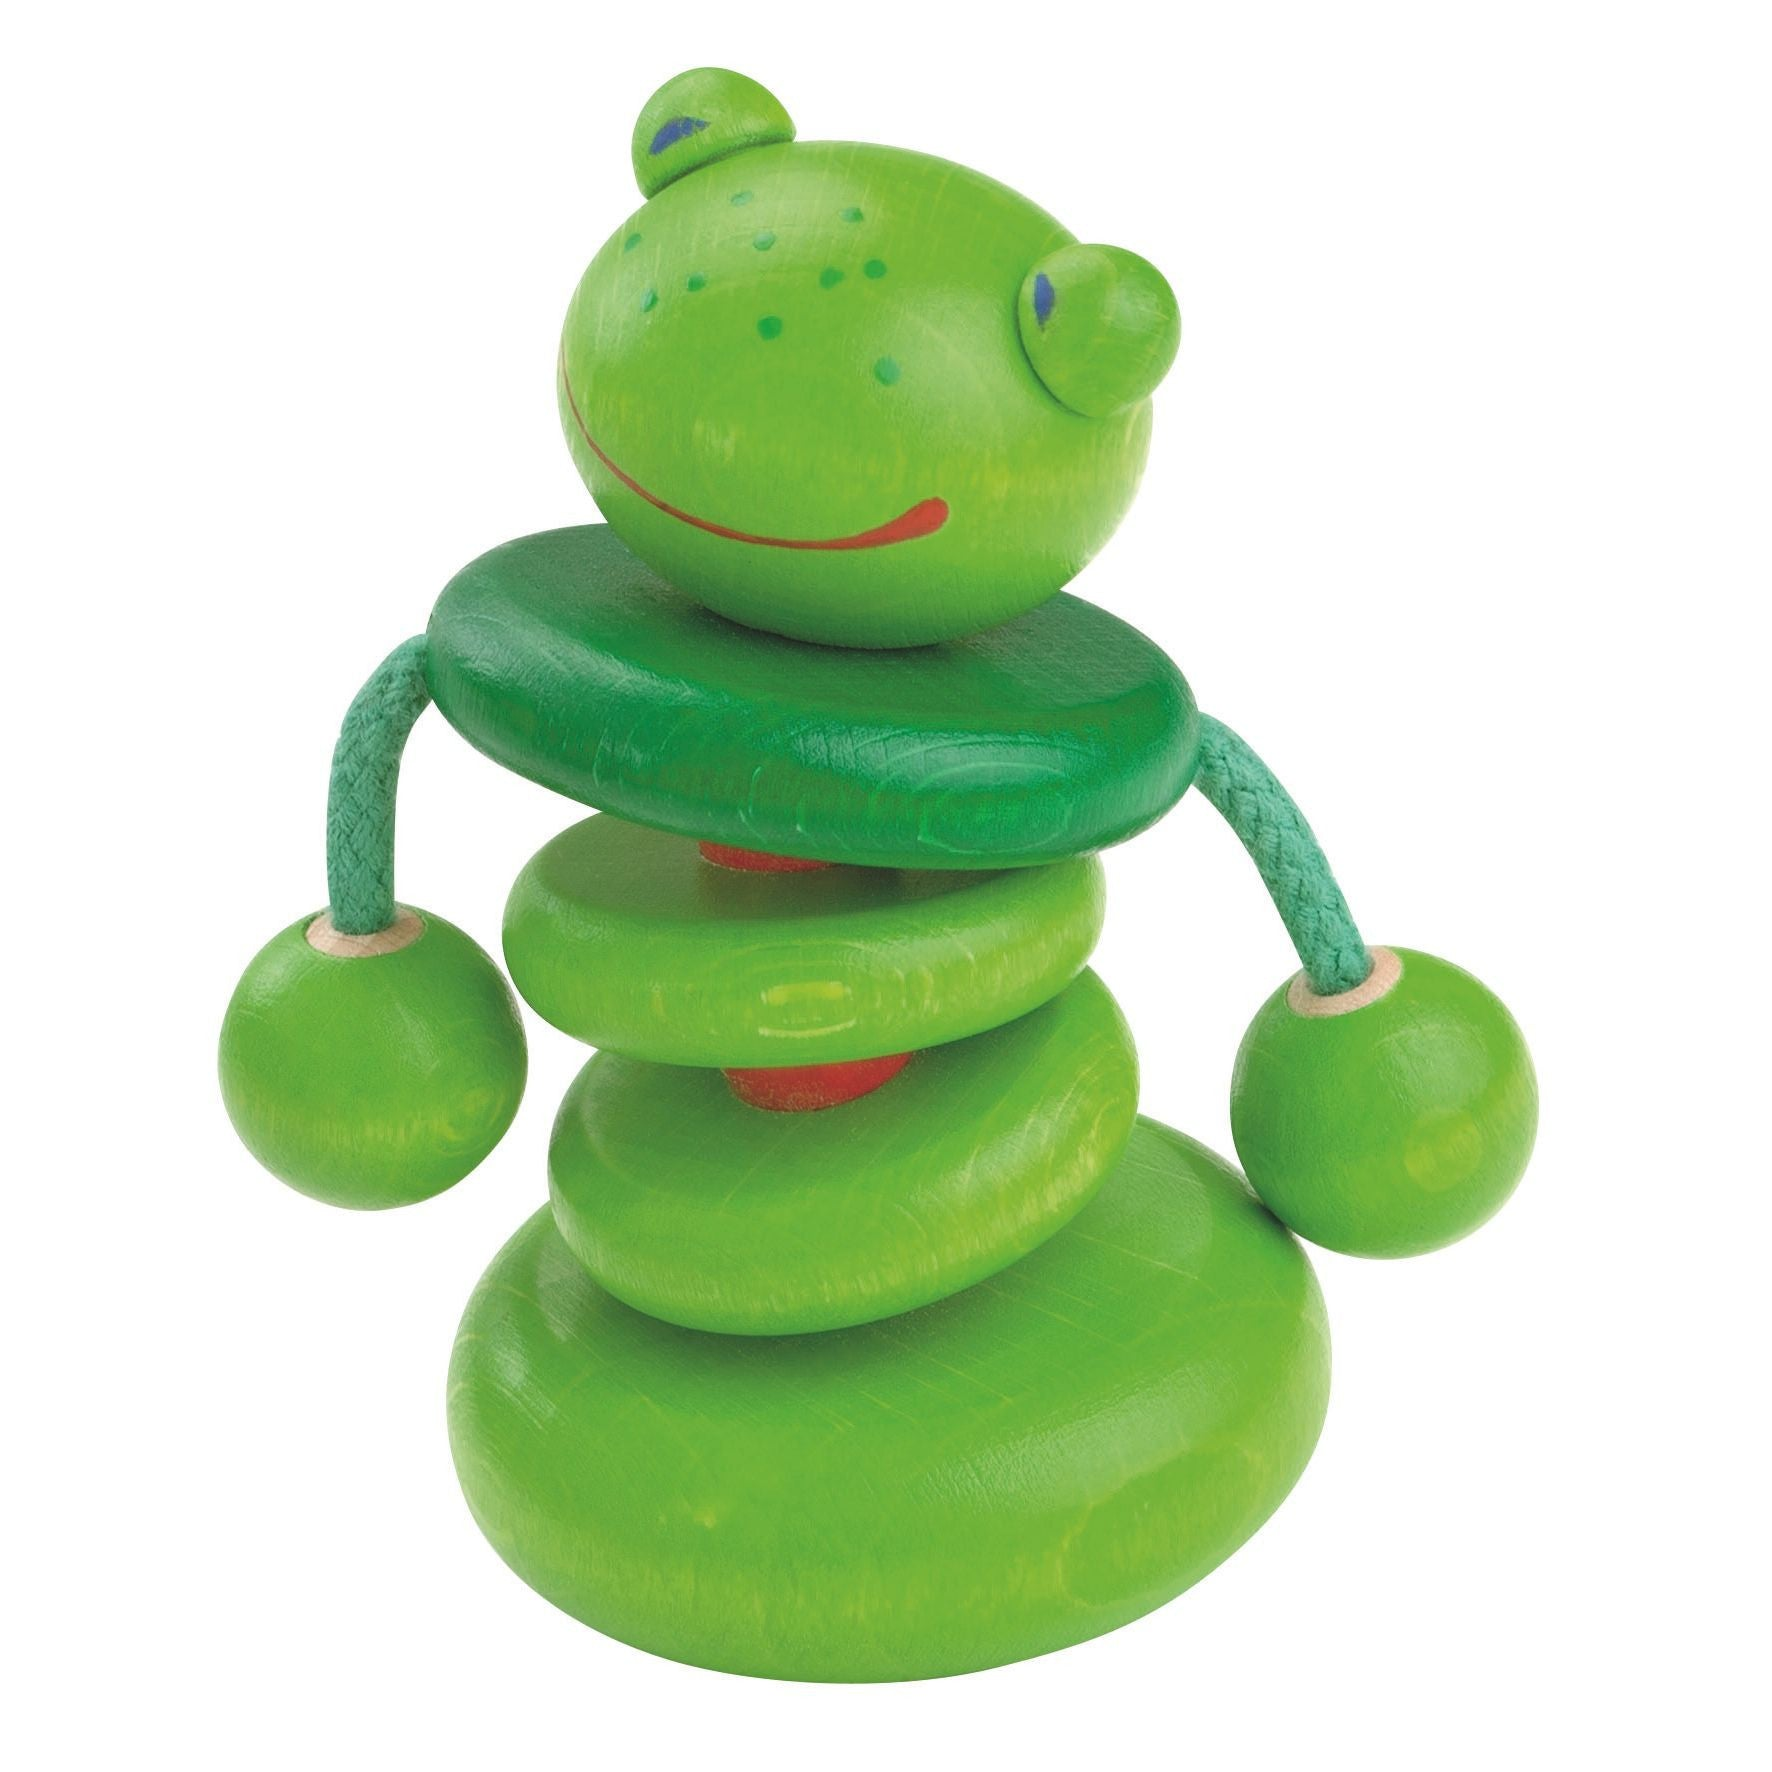 Haba Croo-ak Clutching Toy